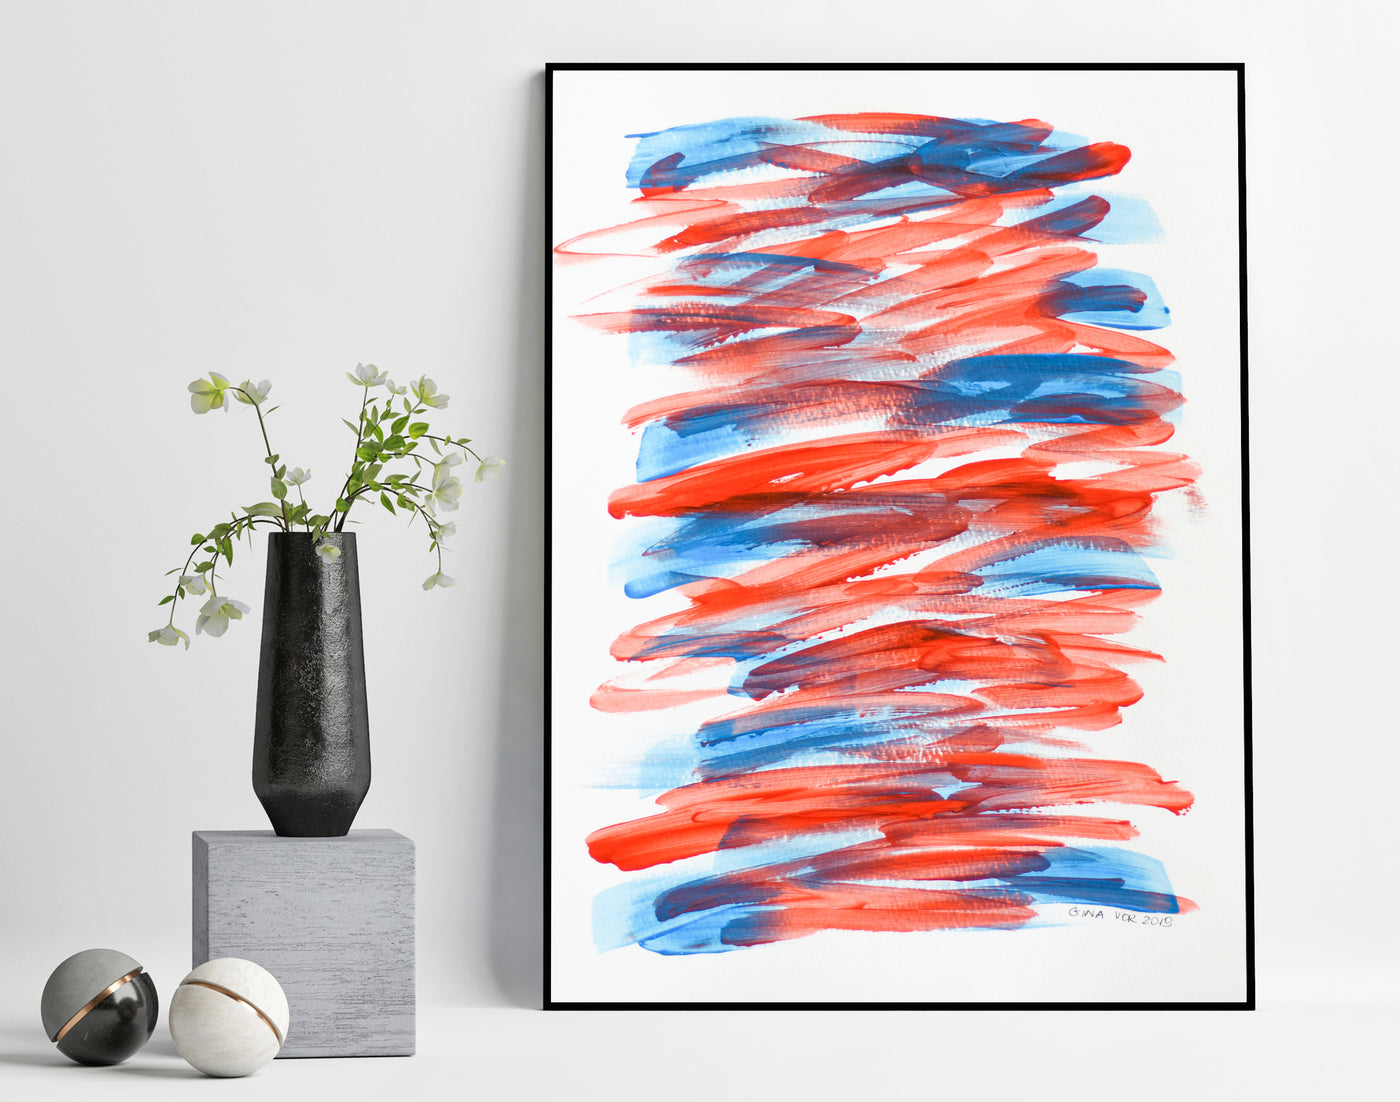 Abstract art painting on paper in blue and red